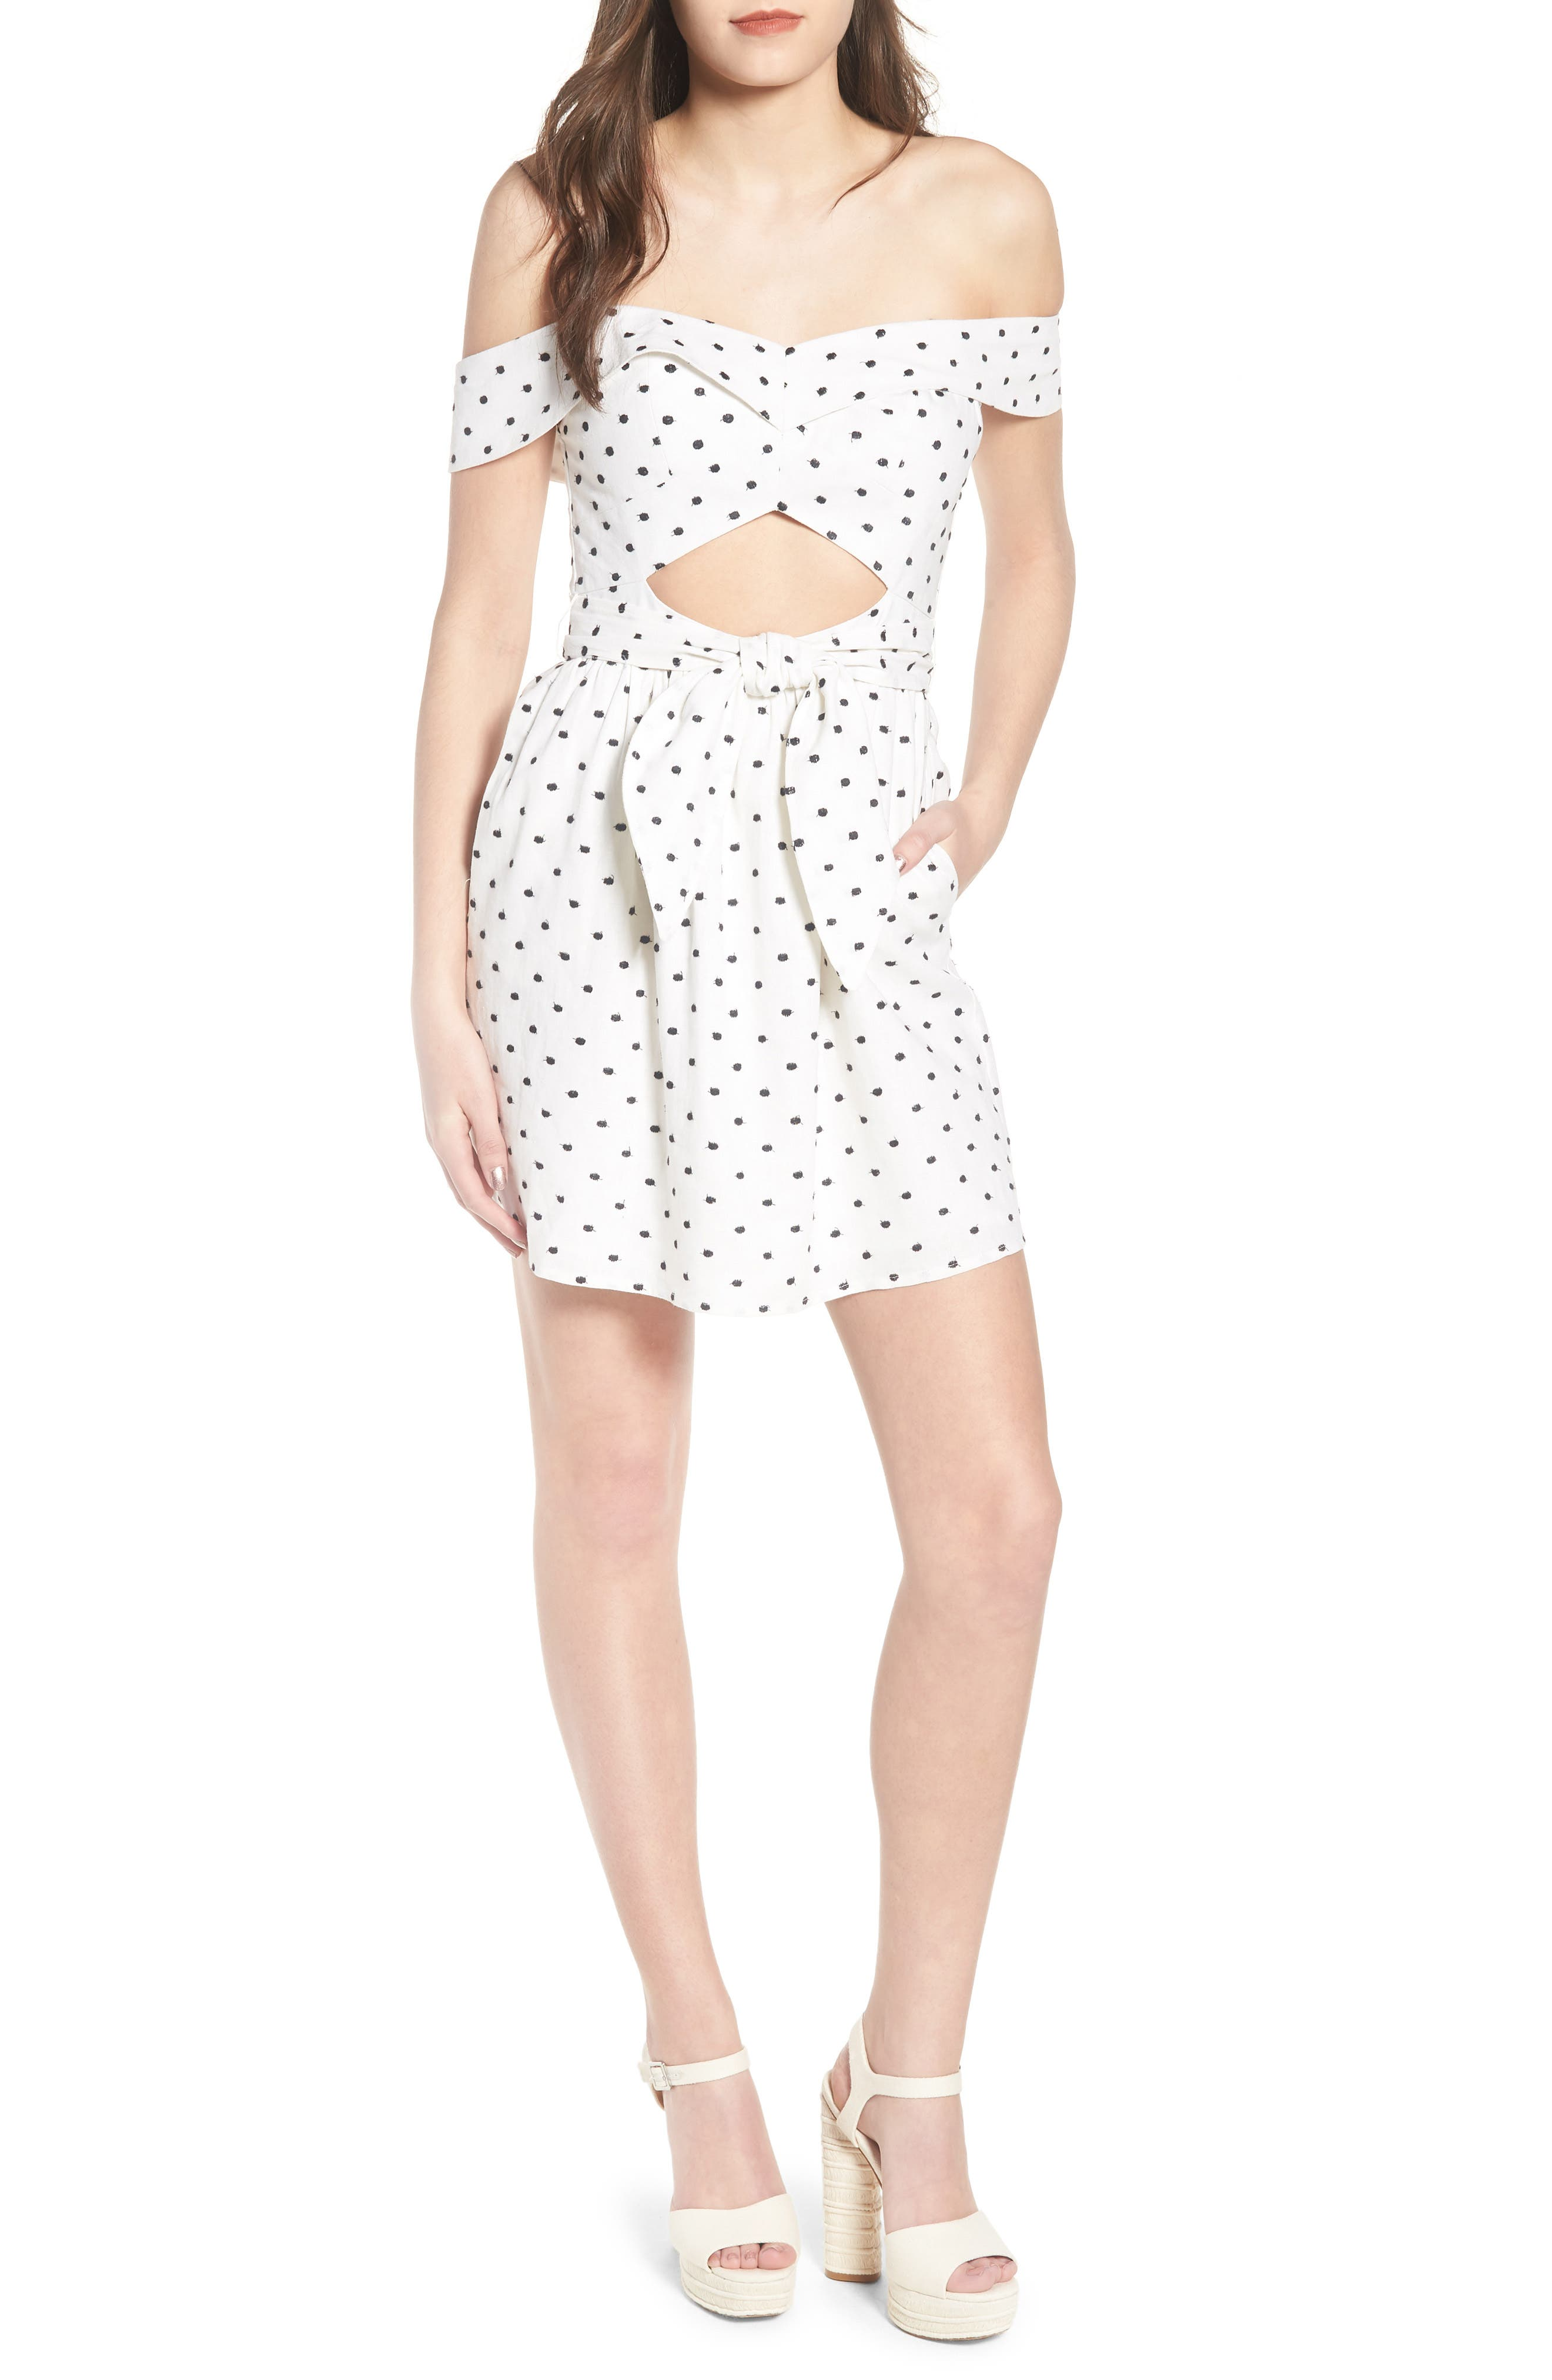 Capri Knot Cutout Minidress,                             Main thumbnail 1, color,                             Ivory Polka Dot